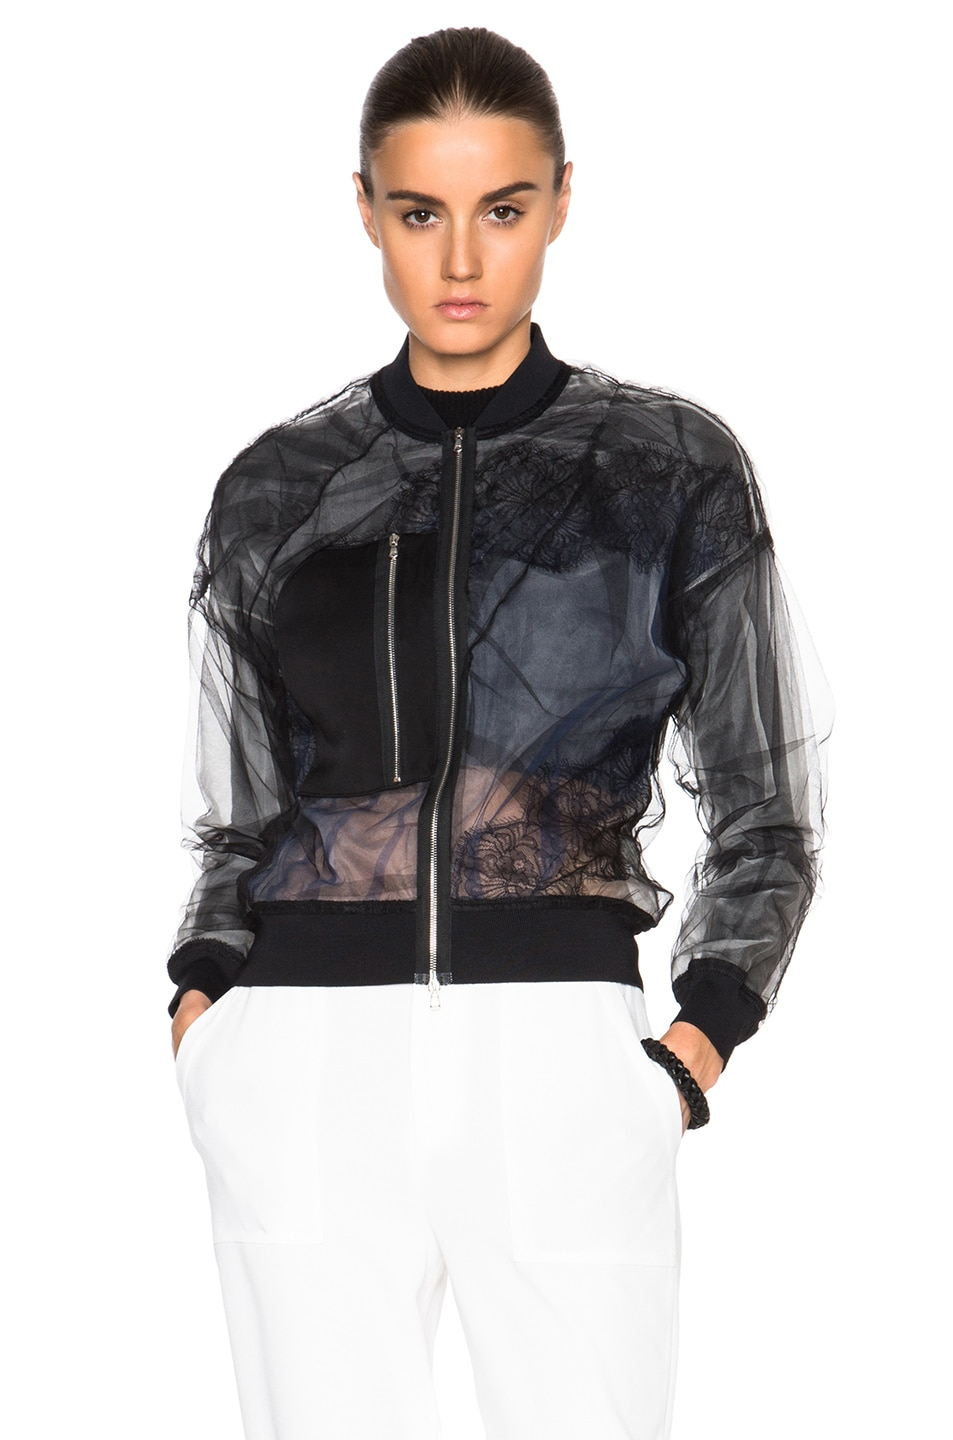 Image 2 of 3.1 phillip lim Lace Insert Bomber Jacket in Black